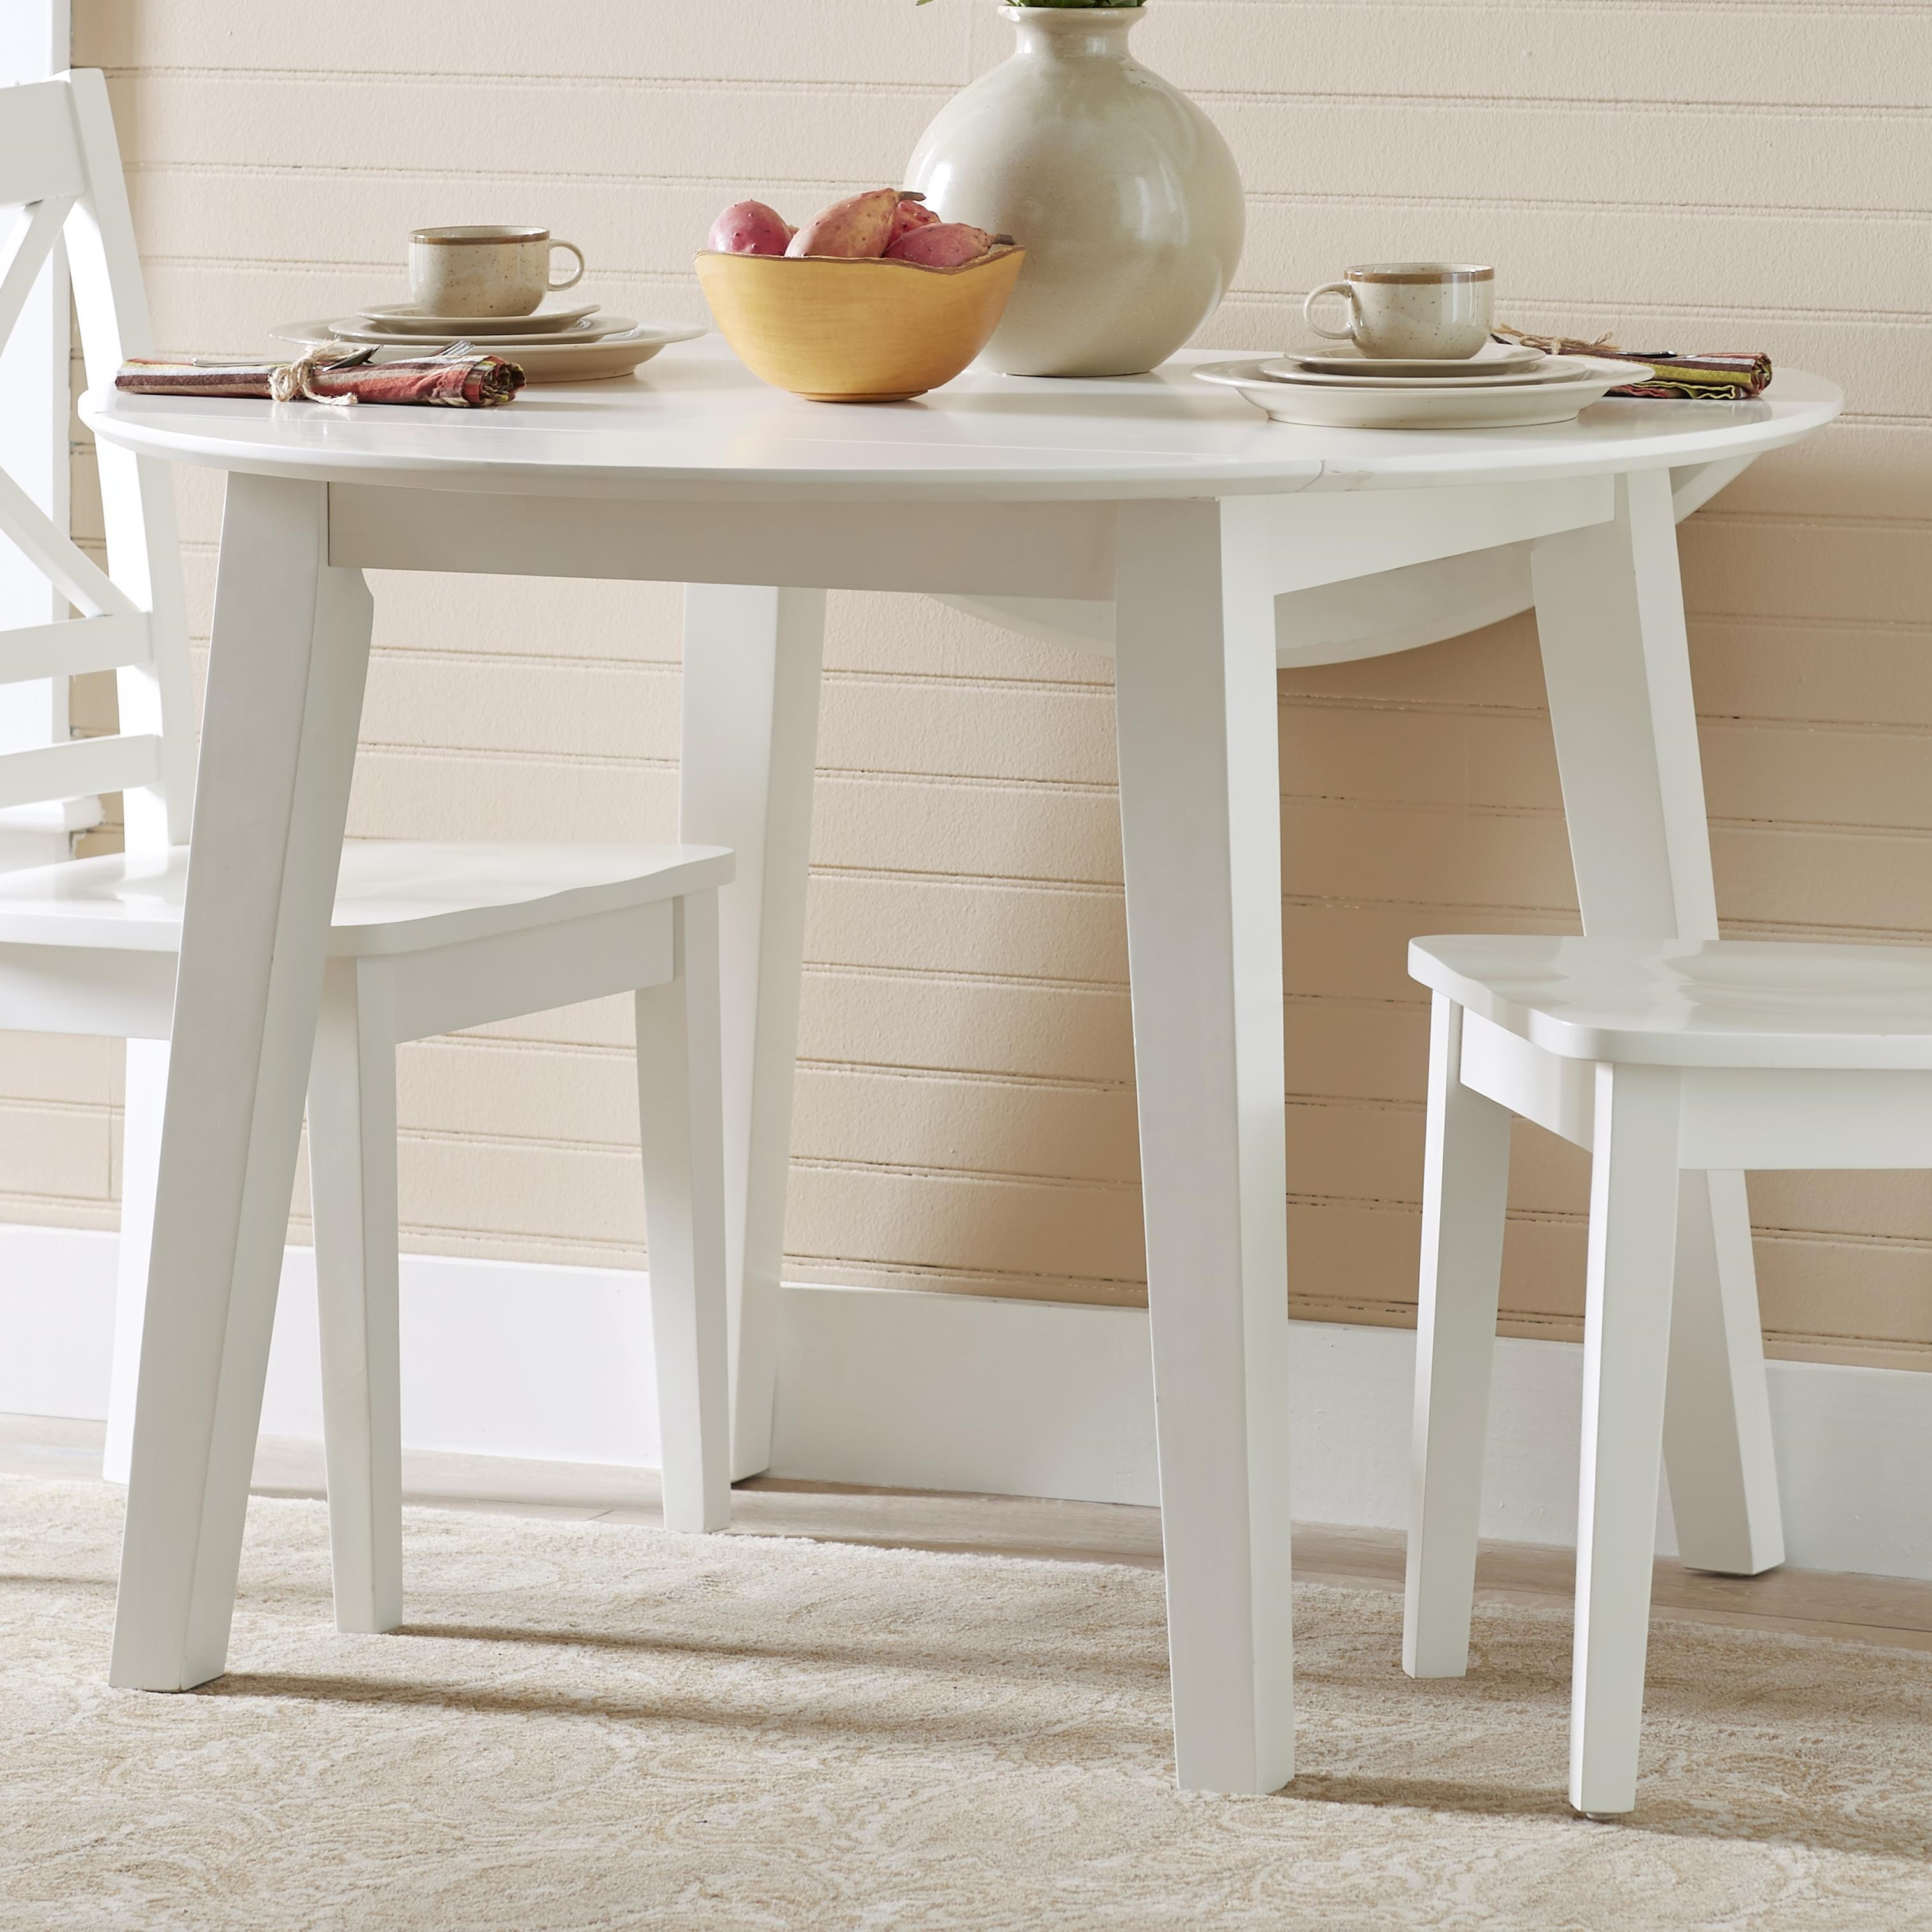 3x3x3   White Round Drop Leaf Table That Seats 4 For Dining Areas By Jofran  At Rotmans